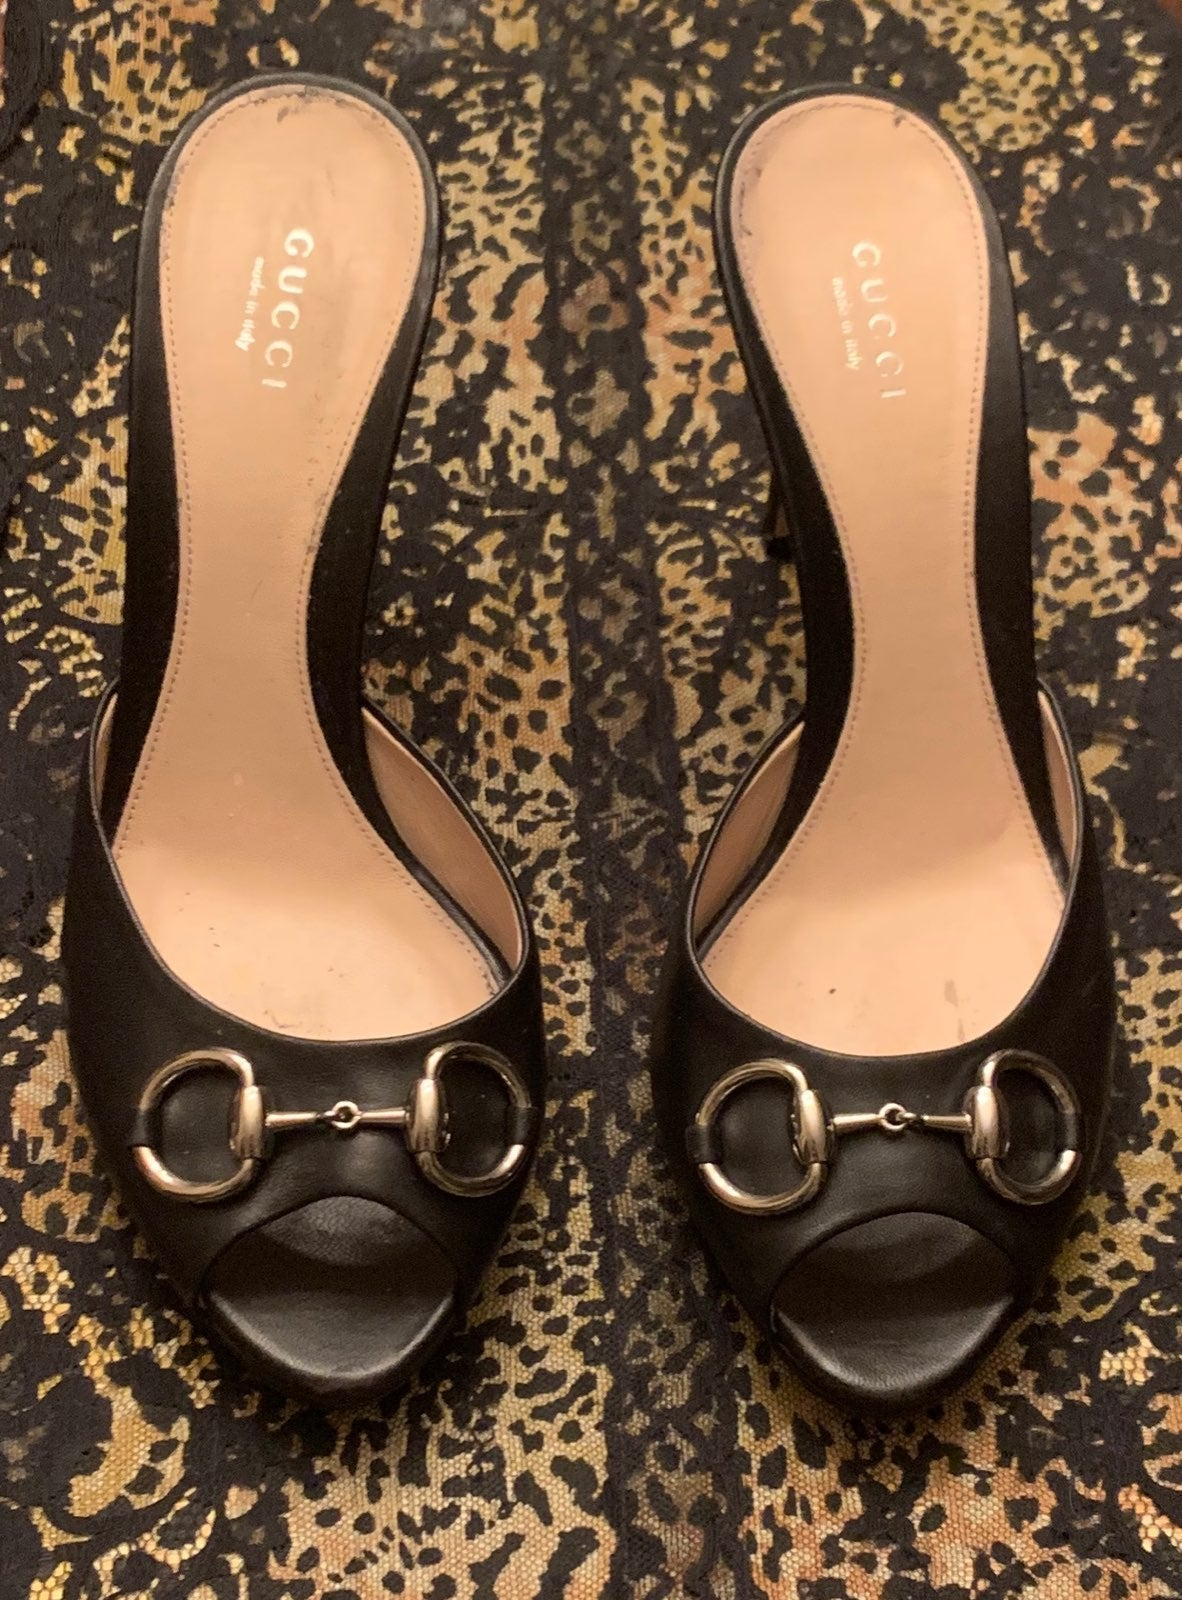 Gucci Black Horsebit Slides/Heels-40